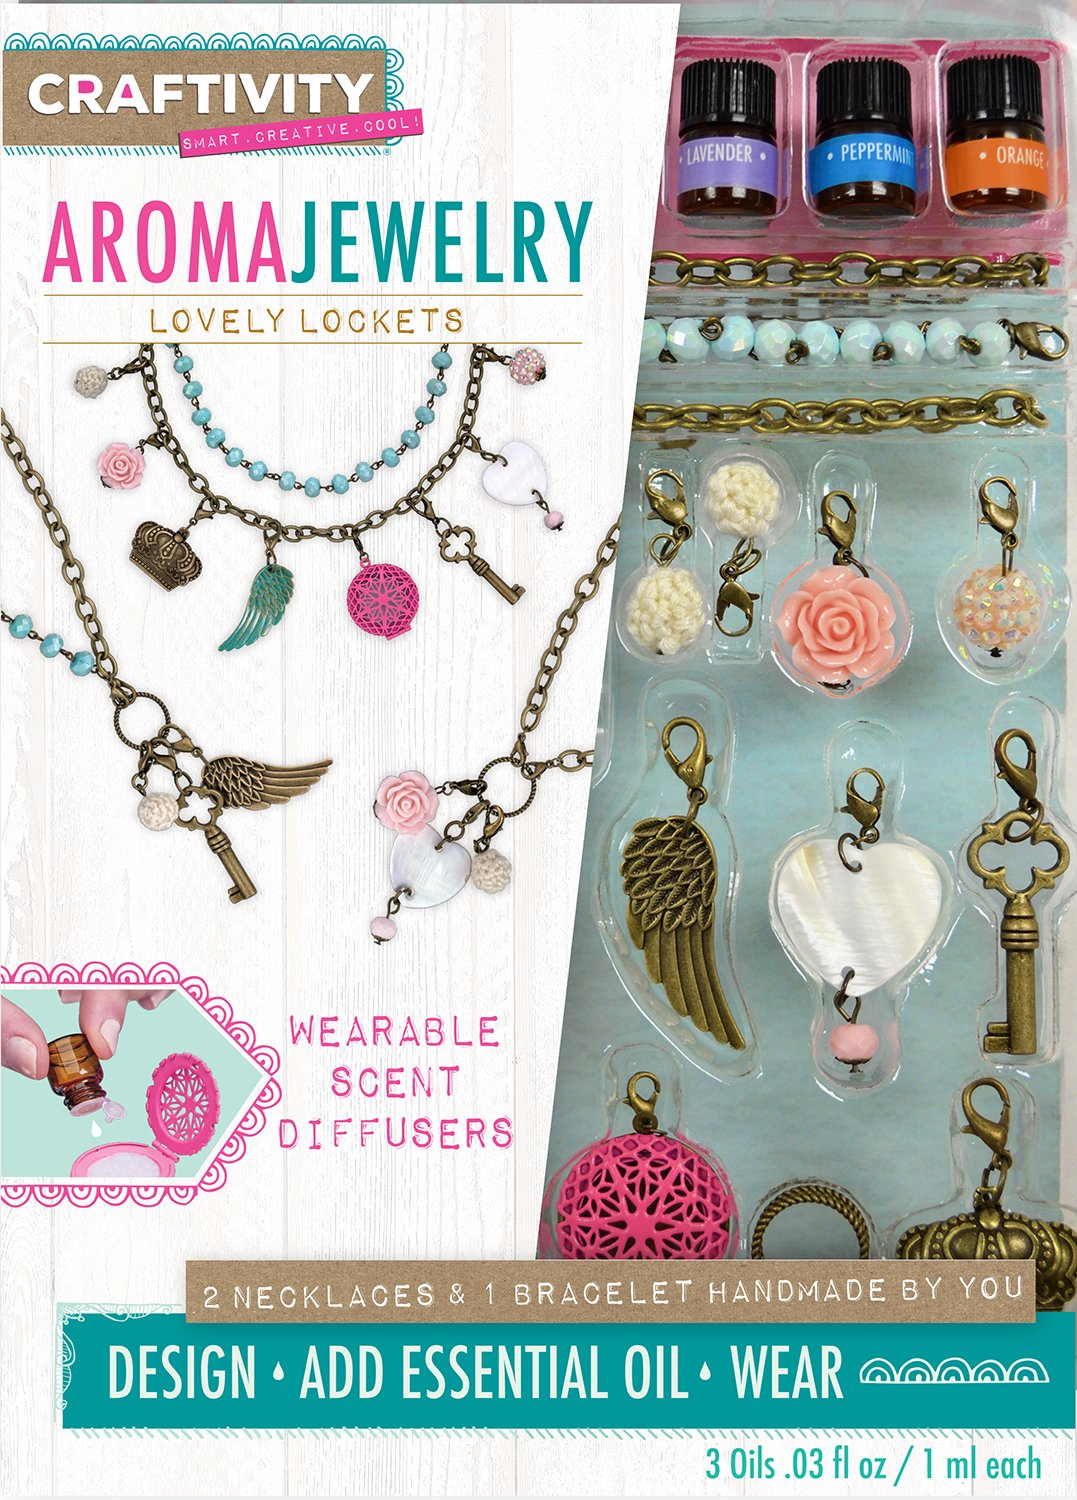 CRAFTIVITY AromaJewelry Lovely Lockets - Essential Oil Jewelry Making Kit by CRAFTIVITY (Image #1)